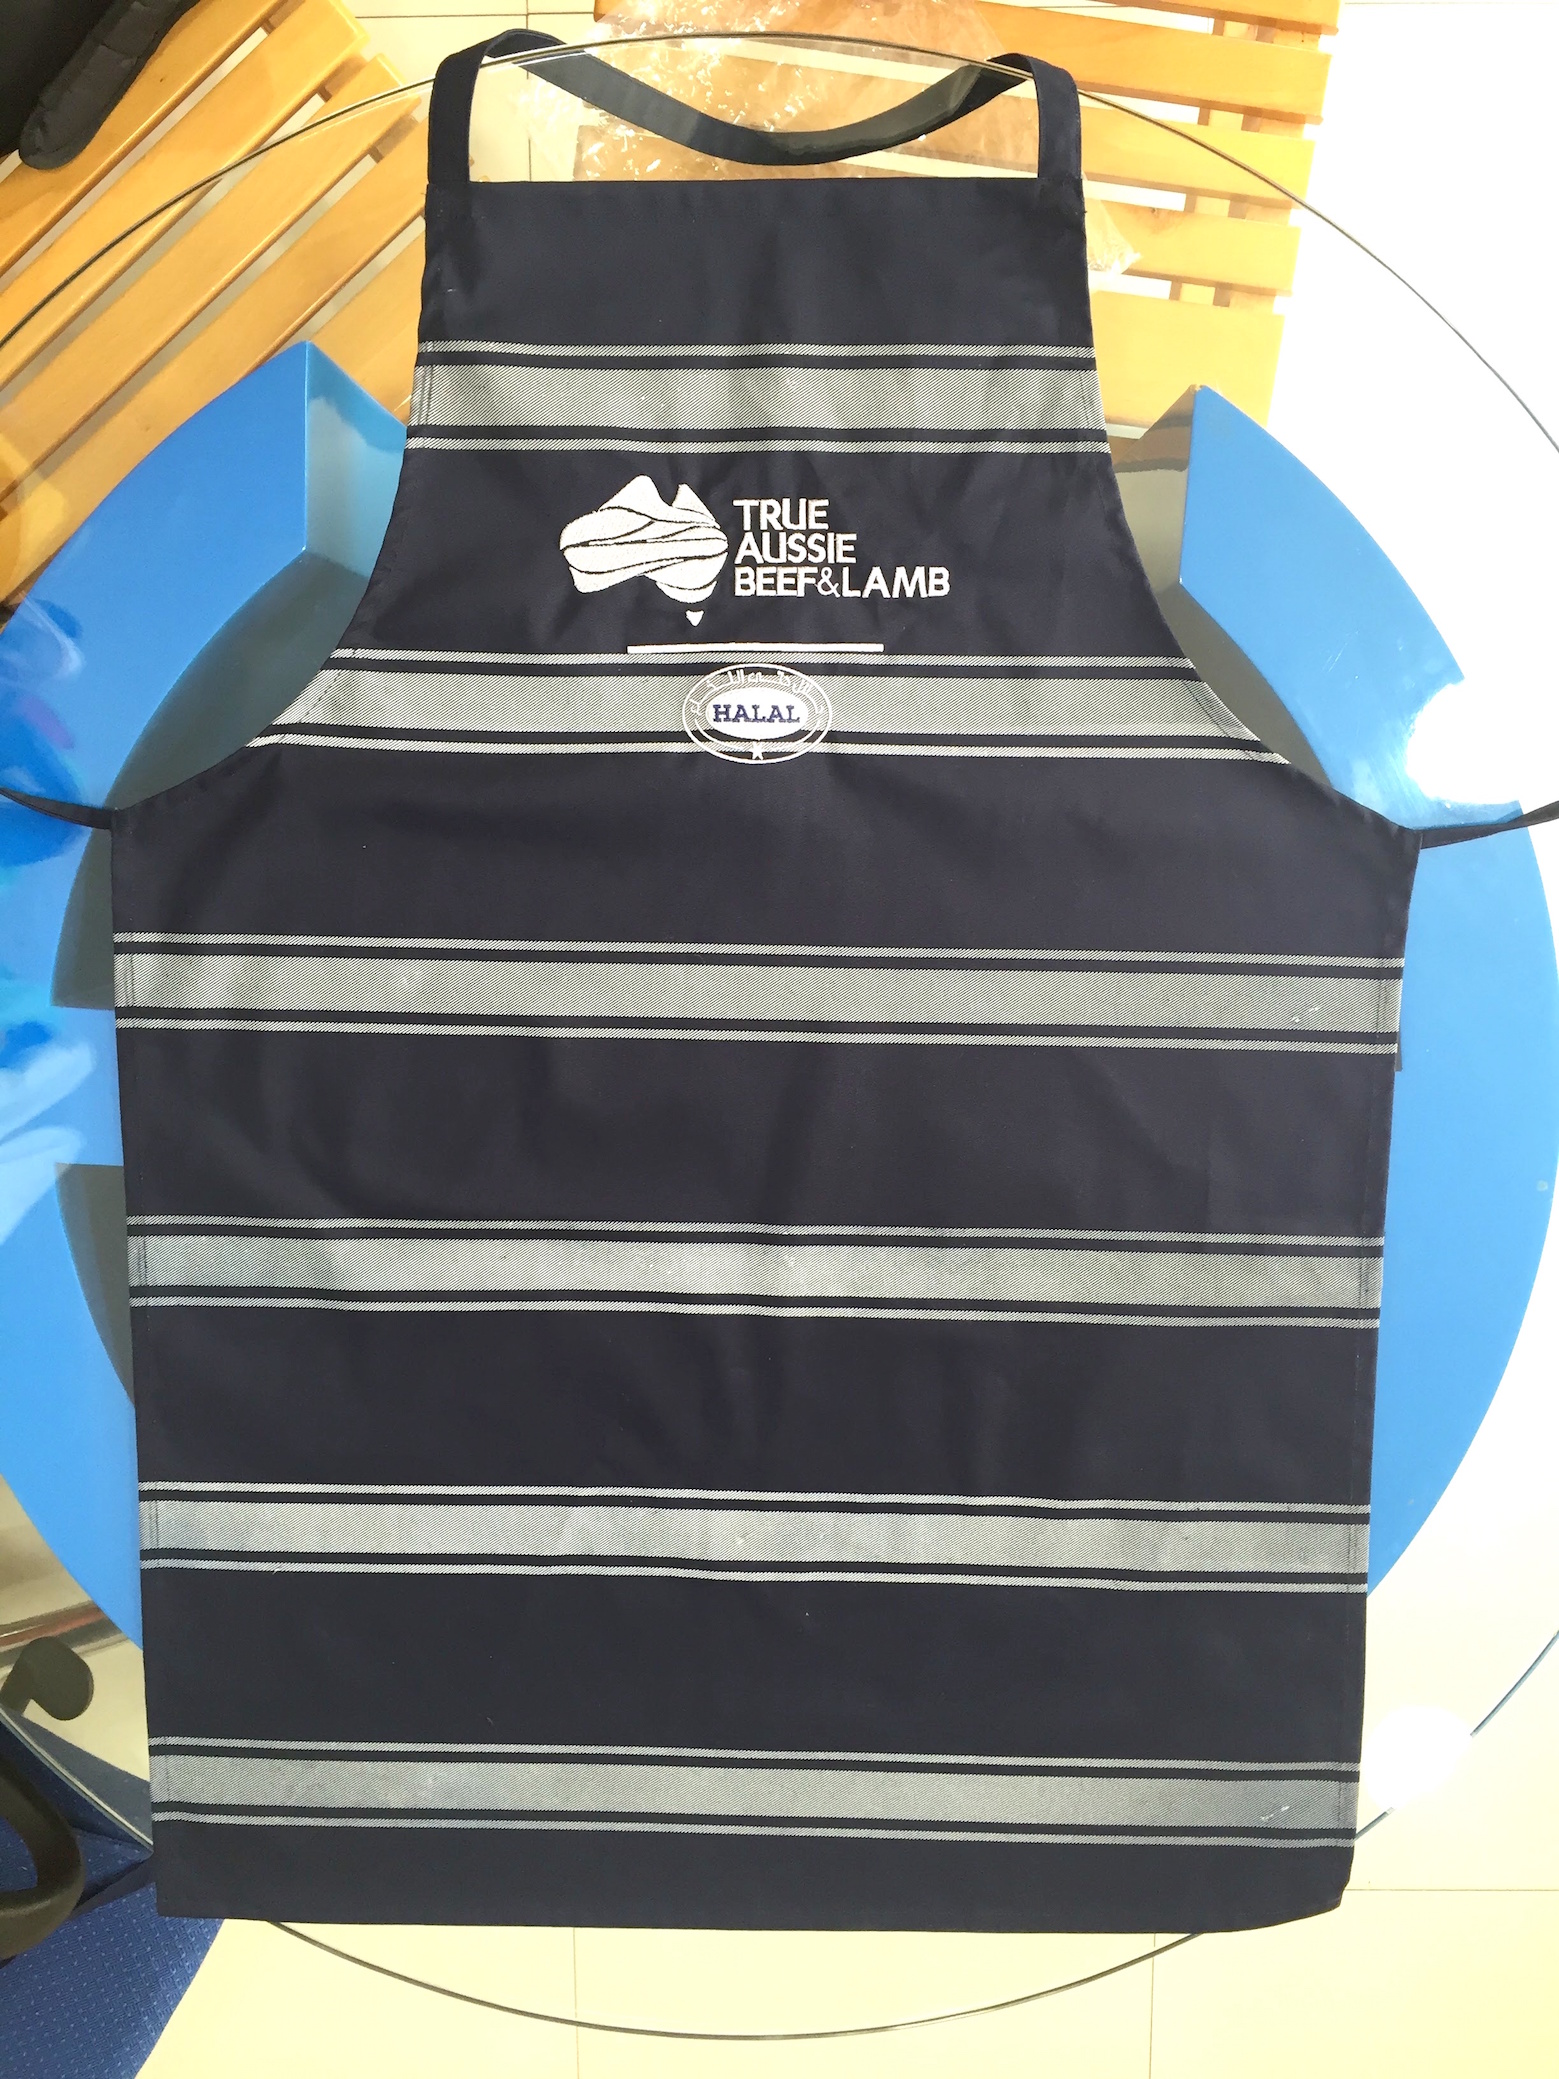 Printed Aprons with Embroidery logo design on it